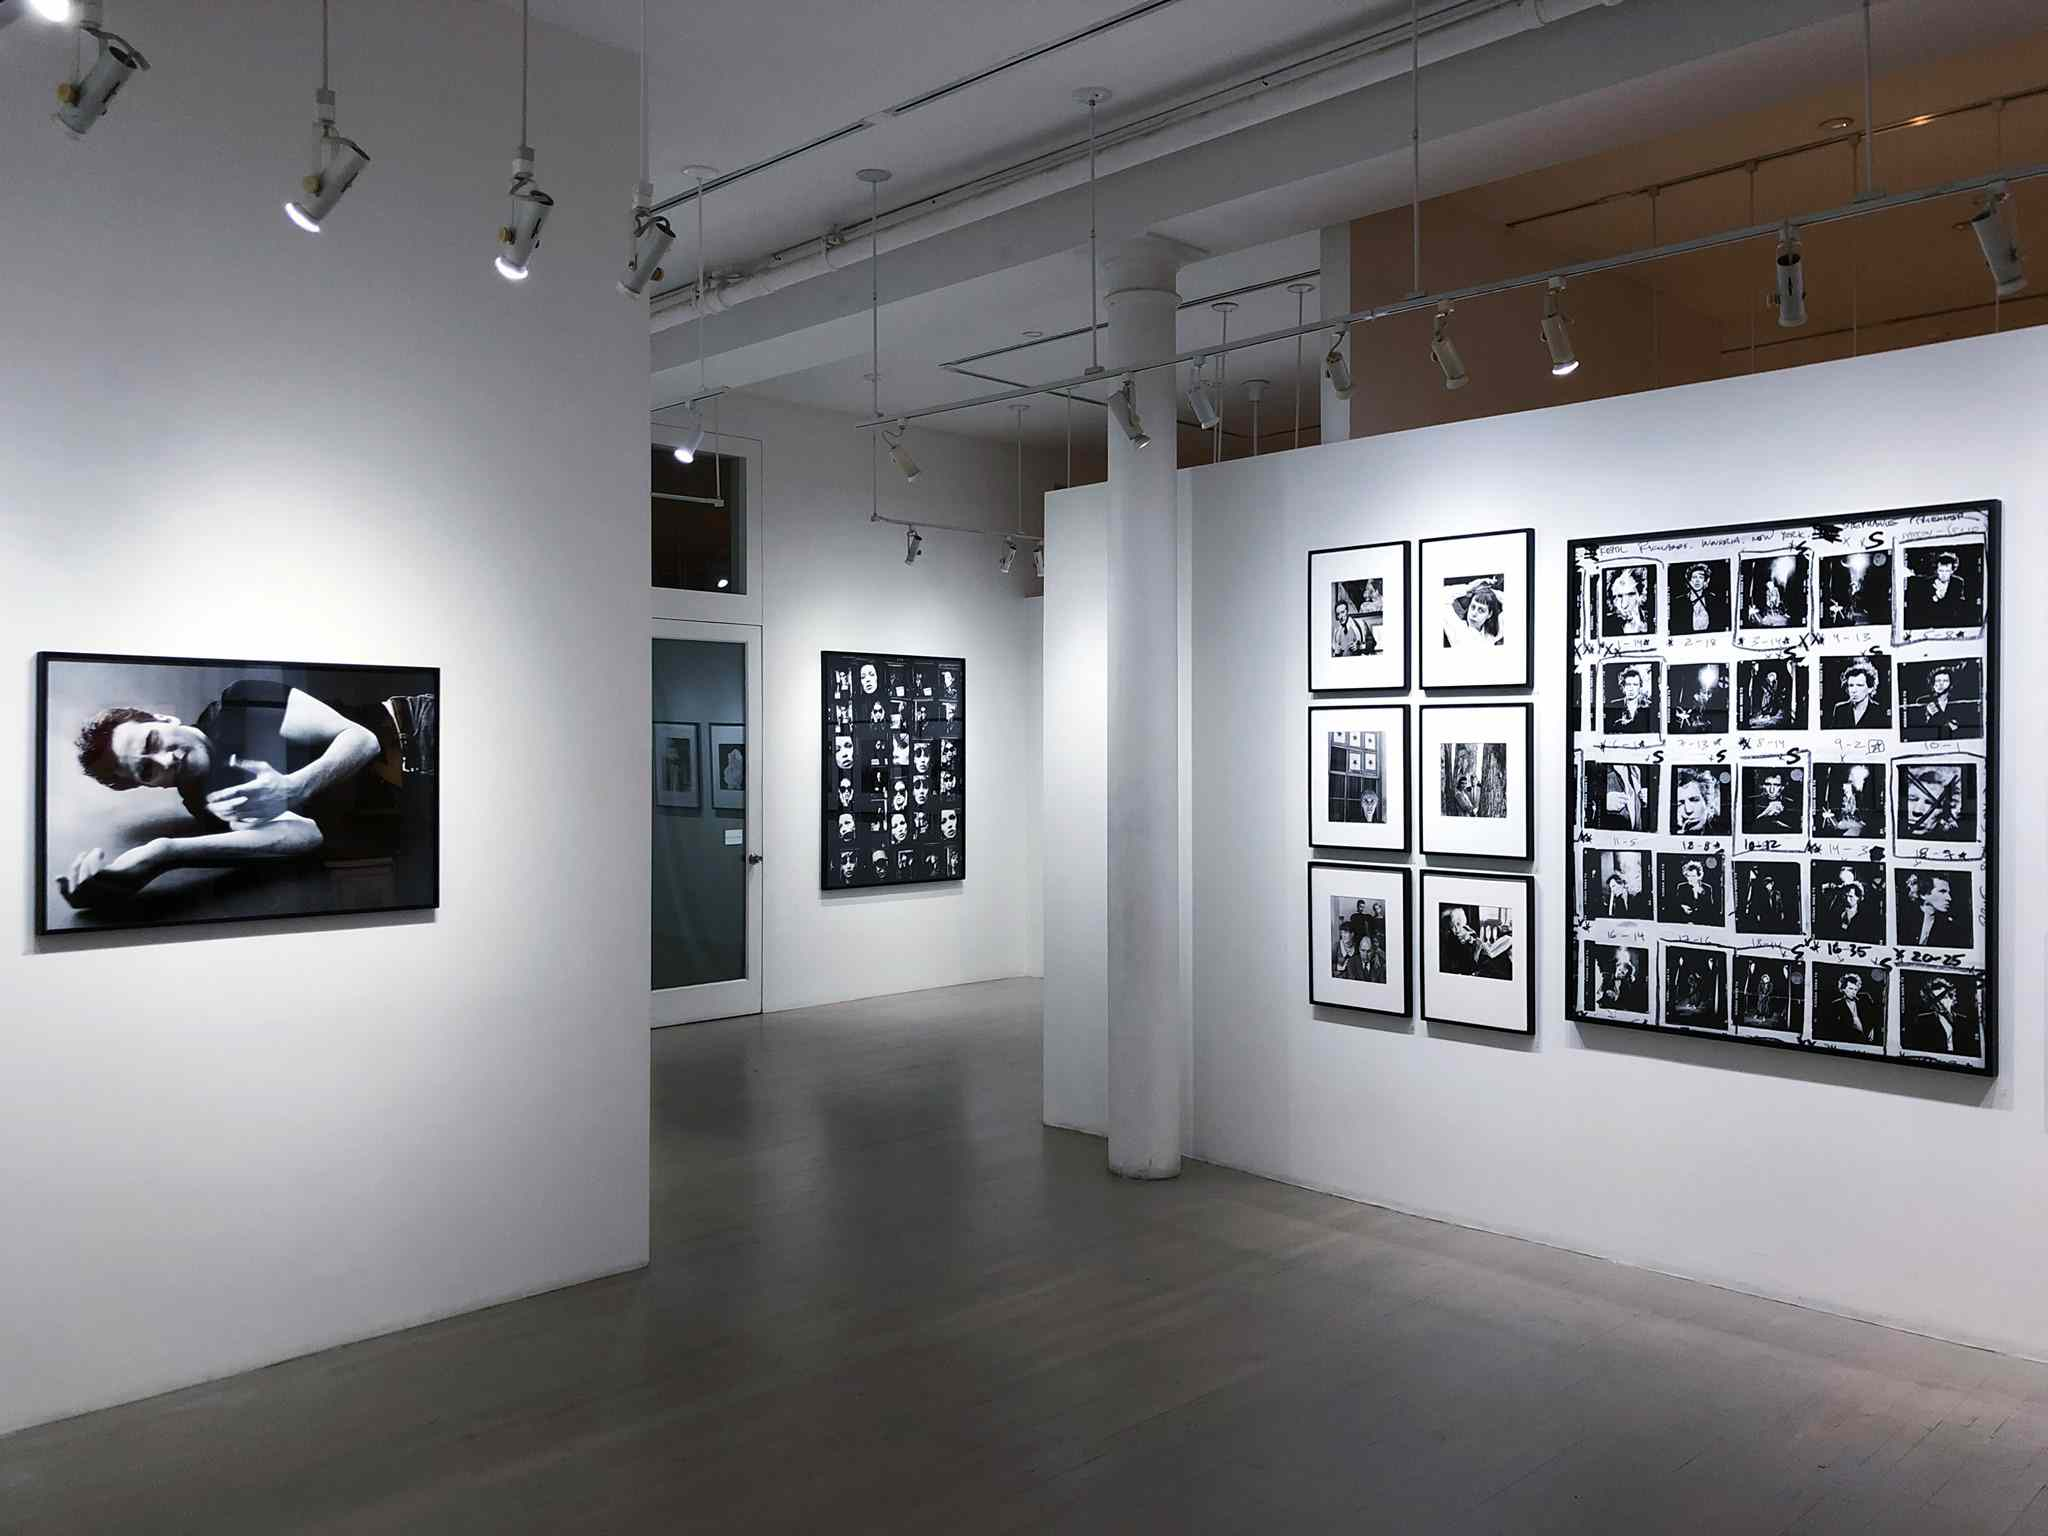 White gallery walls with black and white photographs